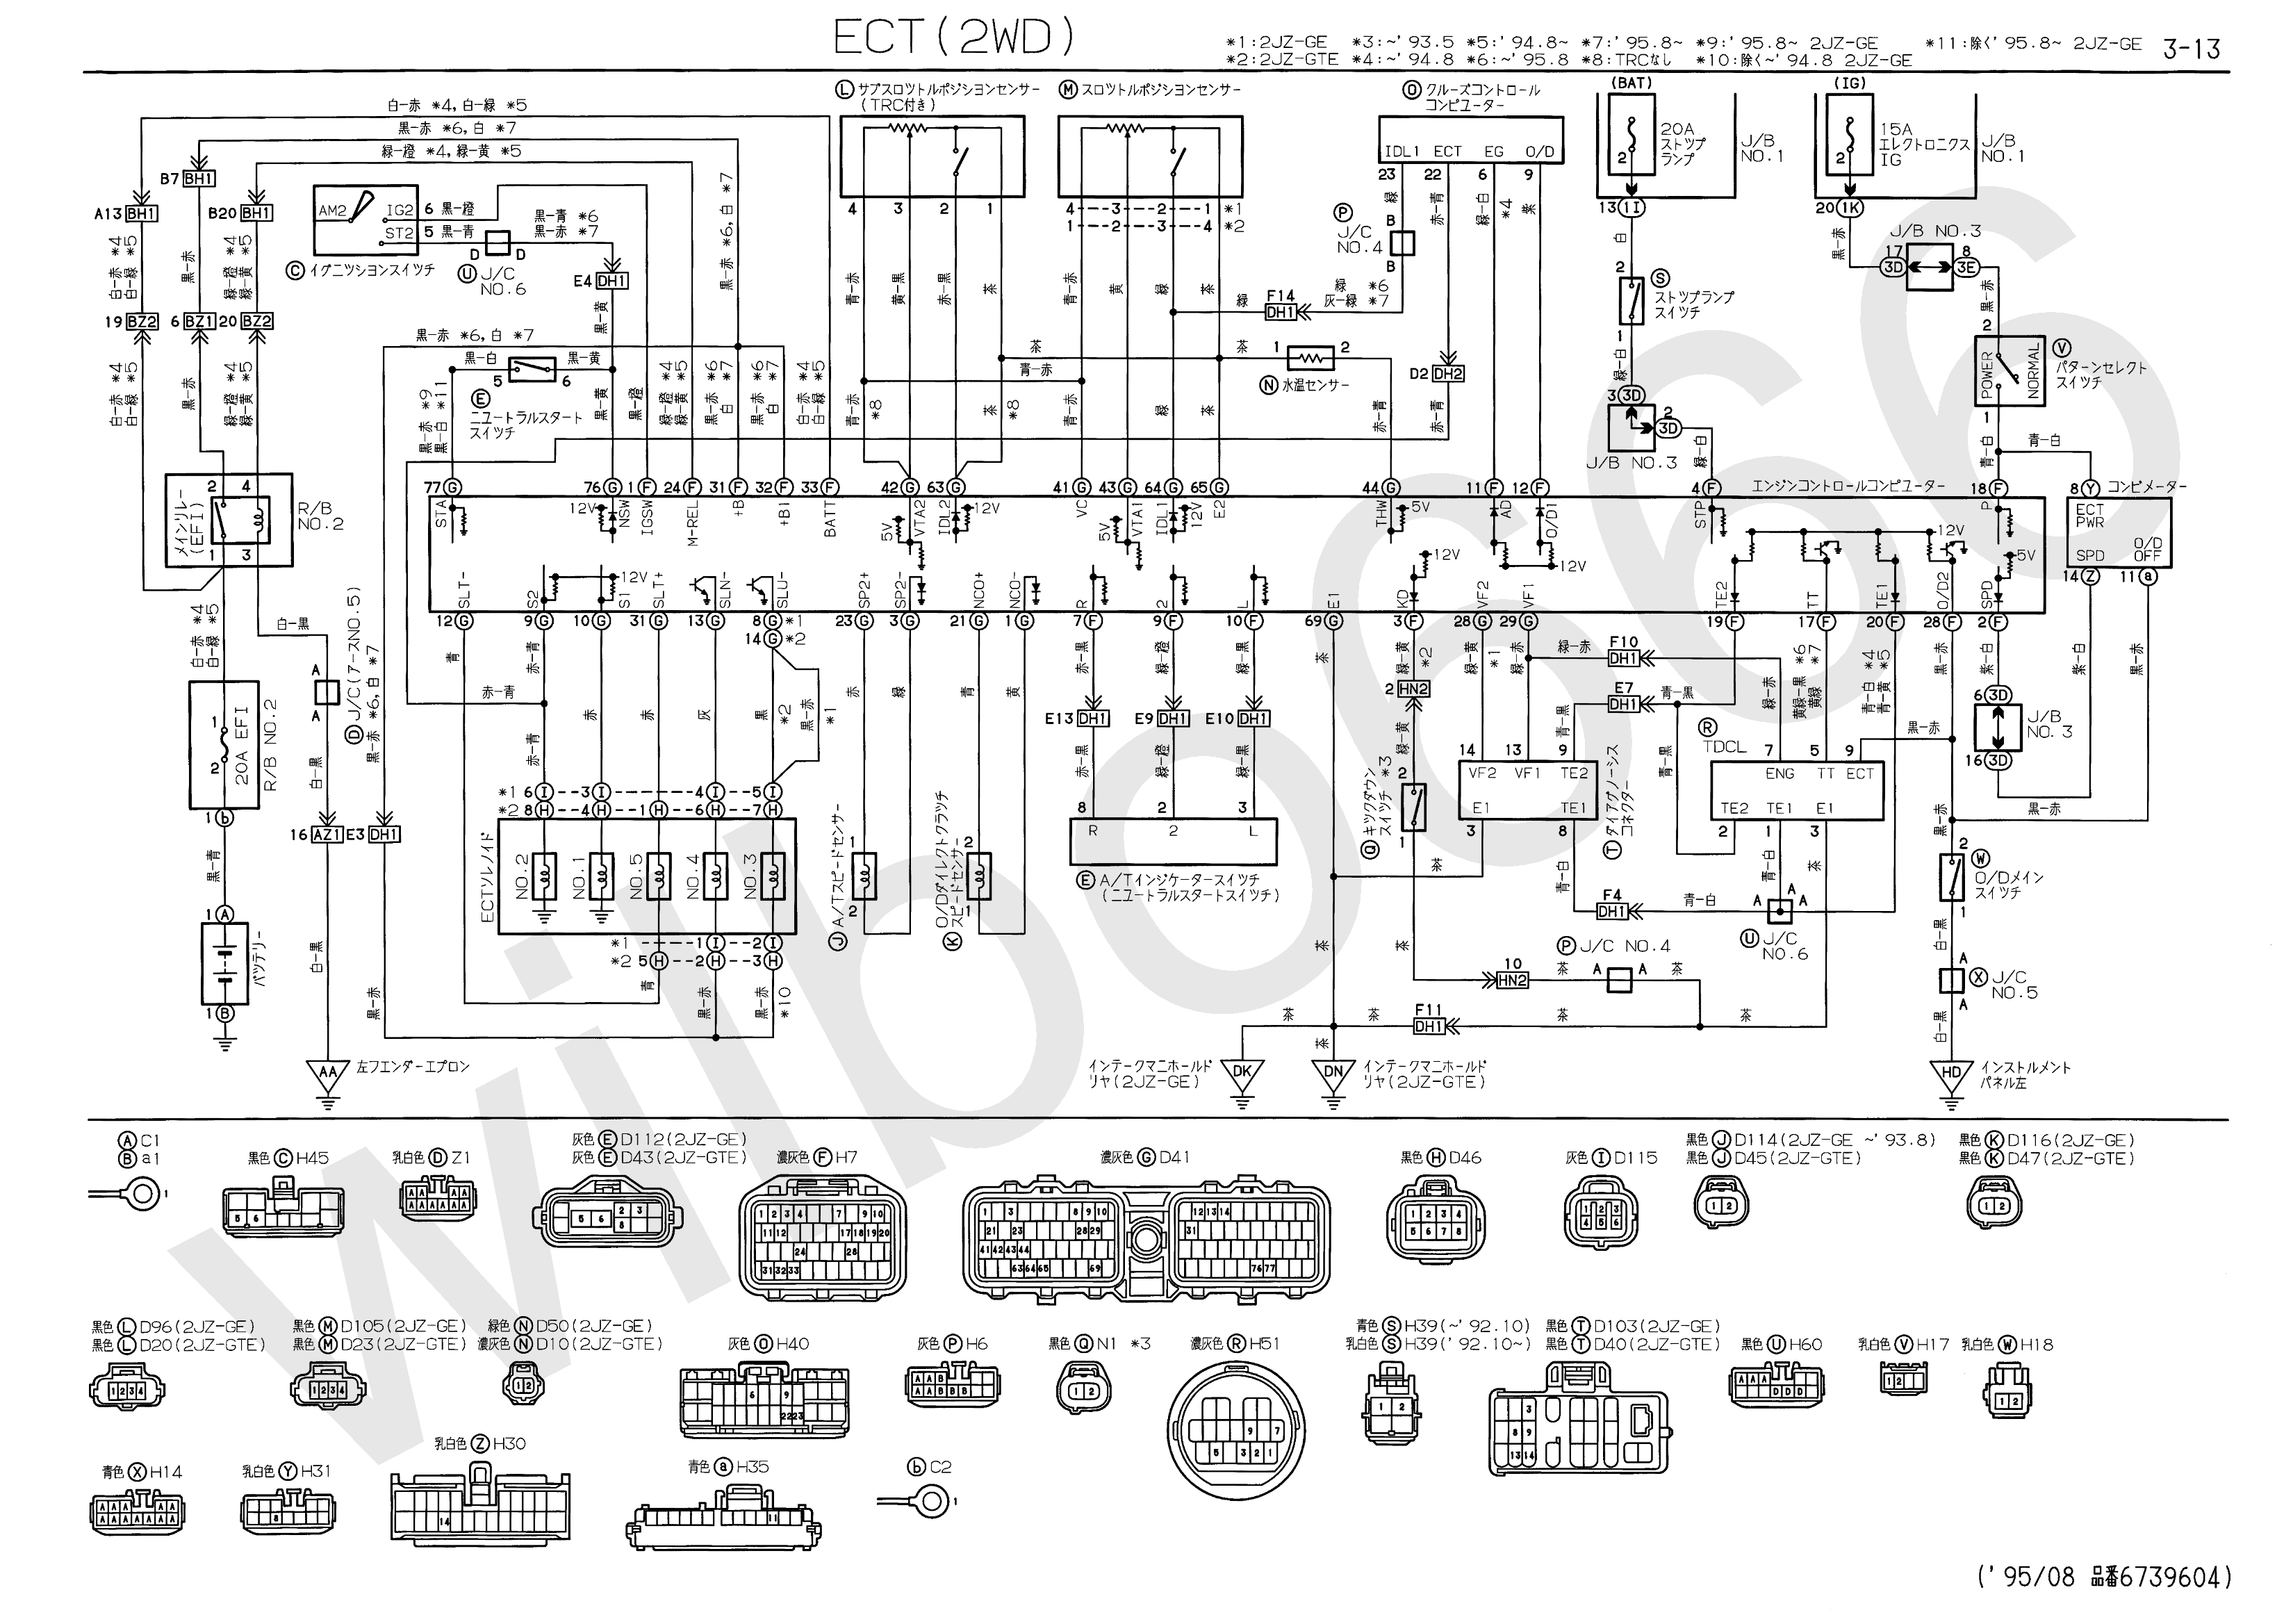 Wilbo666 2jz Gte Jzs147 Aristo Engine Wiring Auto Test Toyota Nsw Sta Diagram